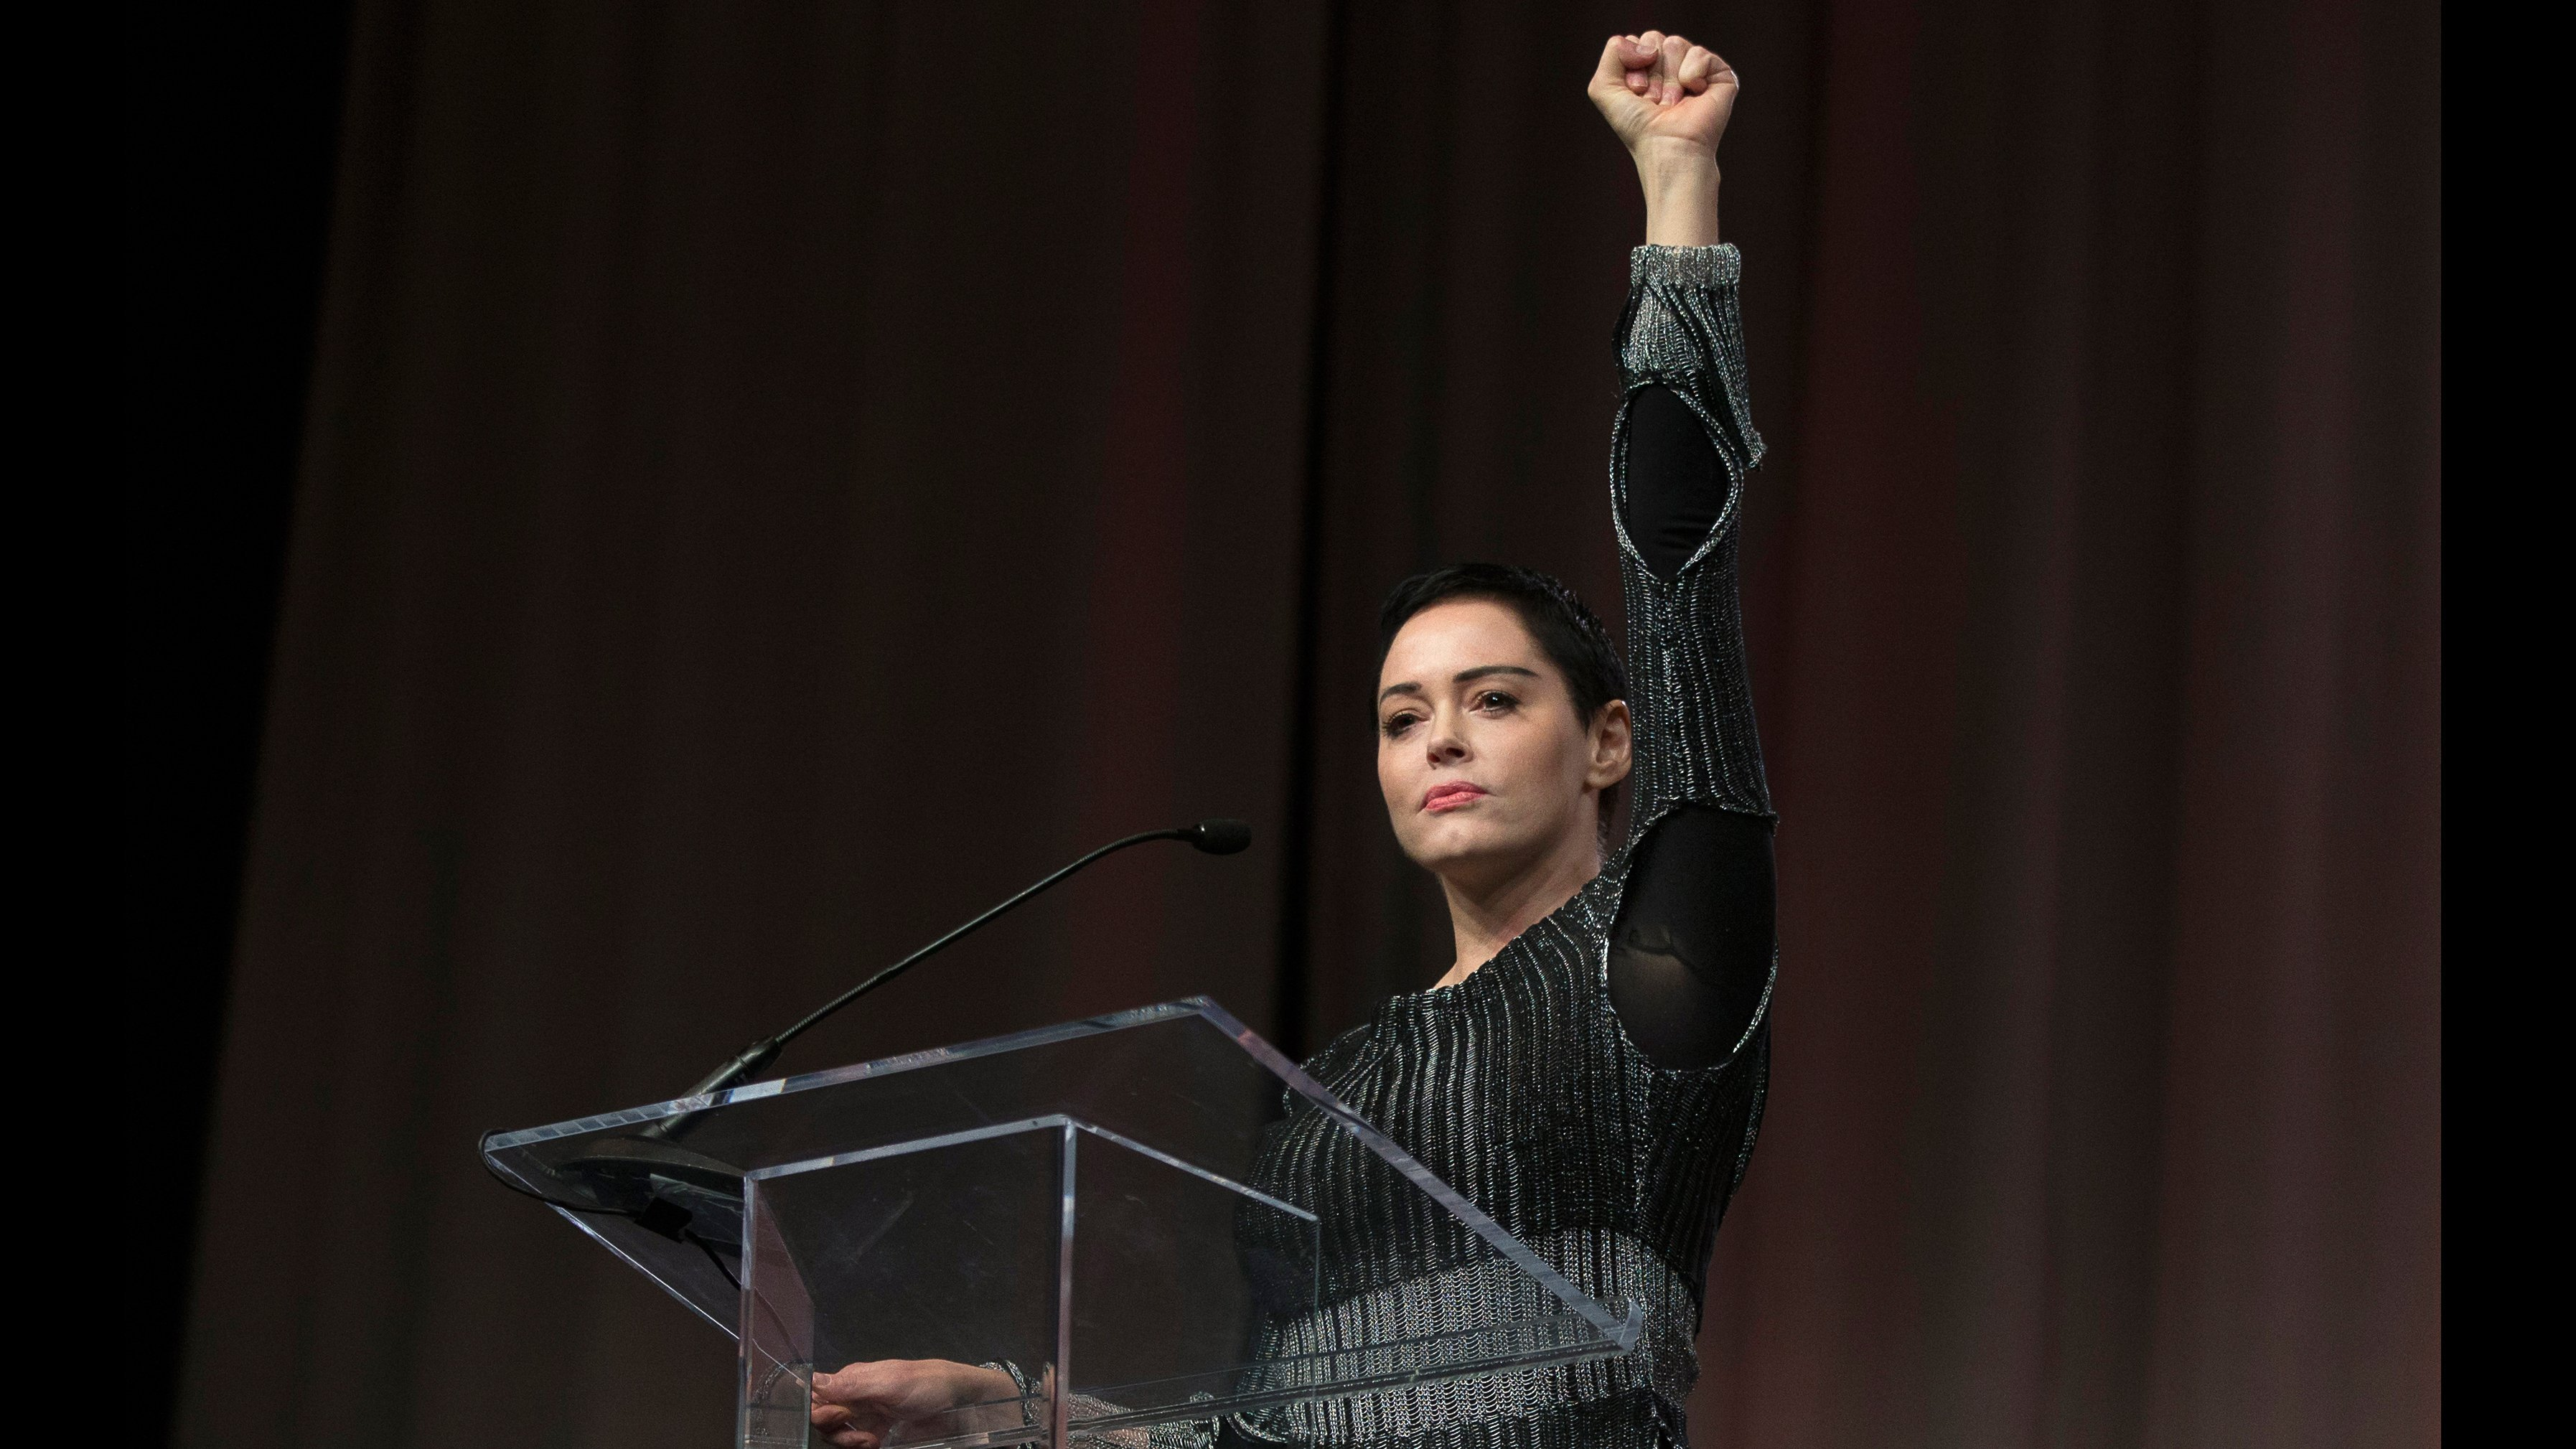 This image is for use with this specific article only** Rose McGowan's bracing brand of activism receives a provocative forum in